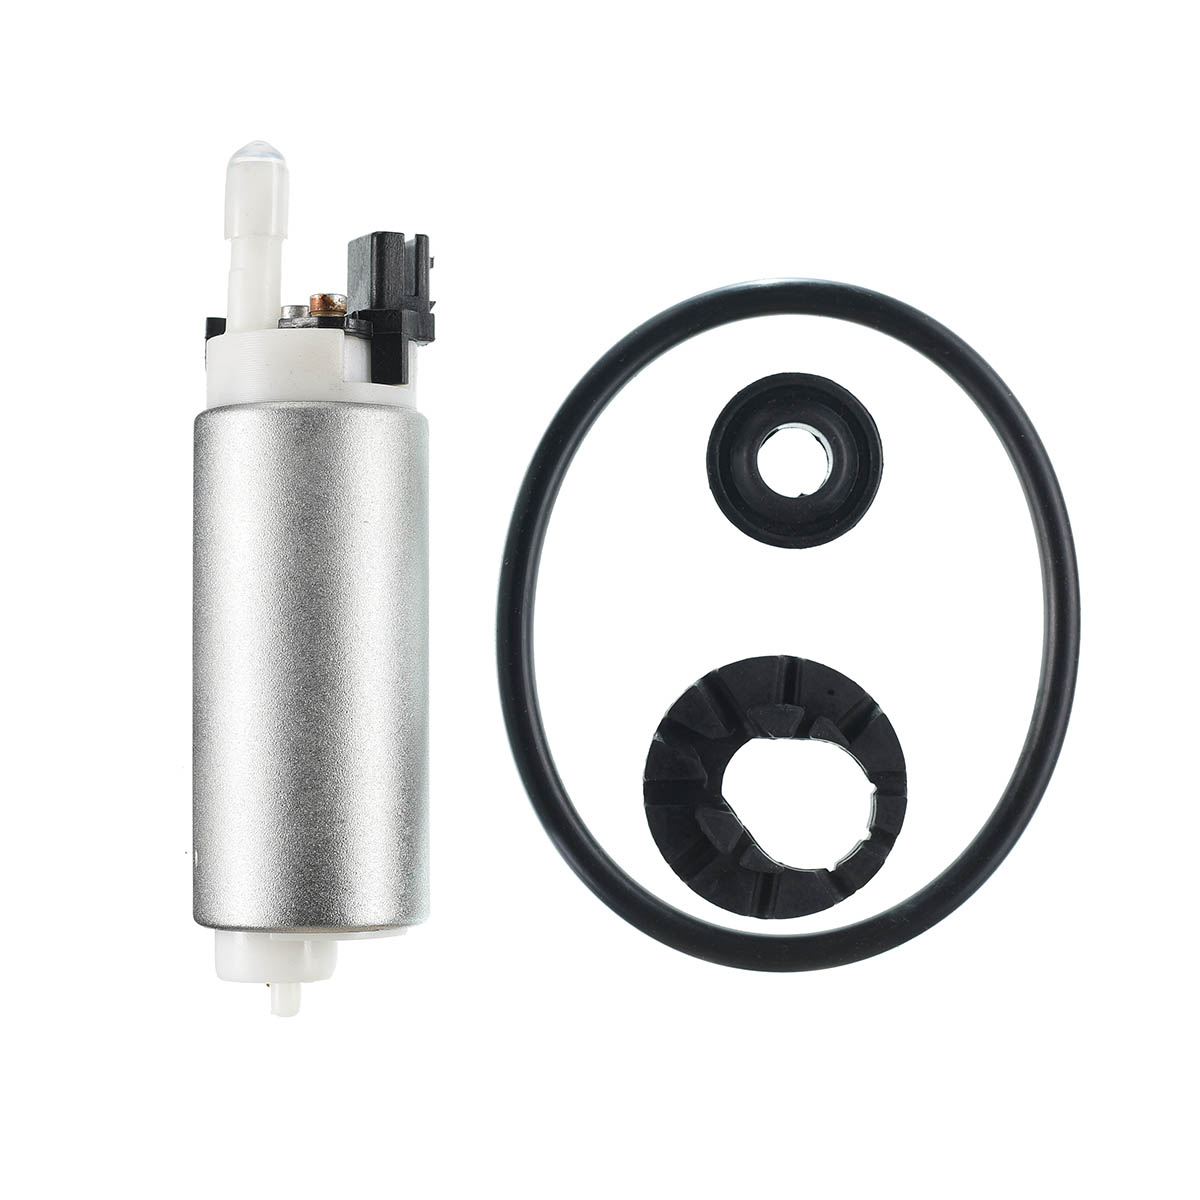 hight resolution of fuel pump for chevrolet beretta cavalier corsica oldsmobile achieva pontiac grand am sunbird buick skylark 92 95 25028921 e3313